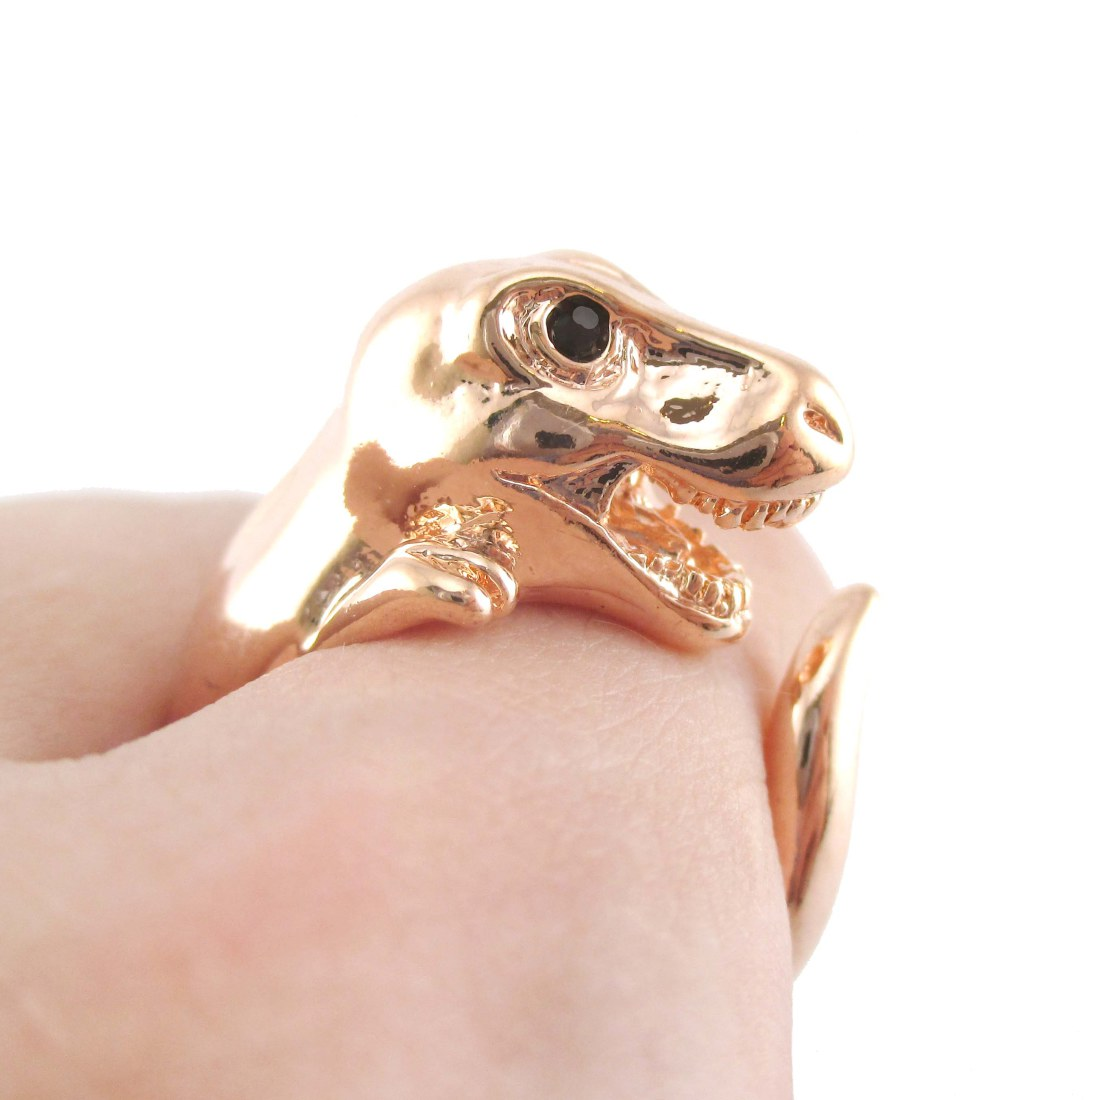 rex t animal ring original rings dinosaur silver products sizes to img dotoly in